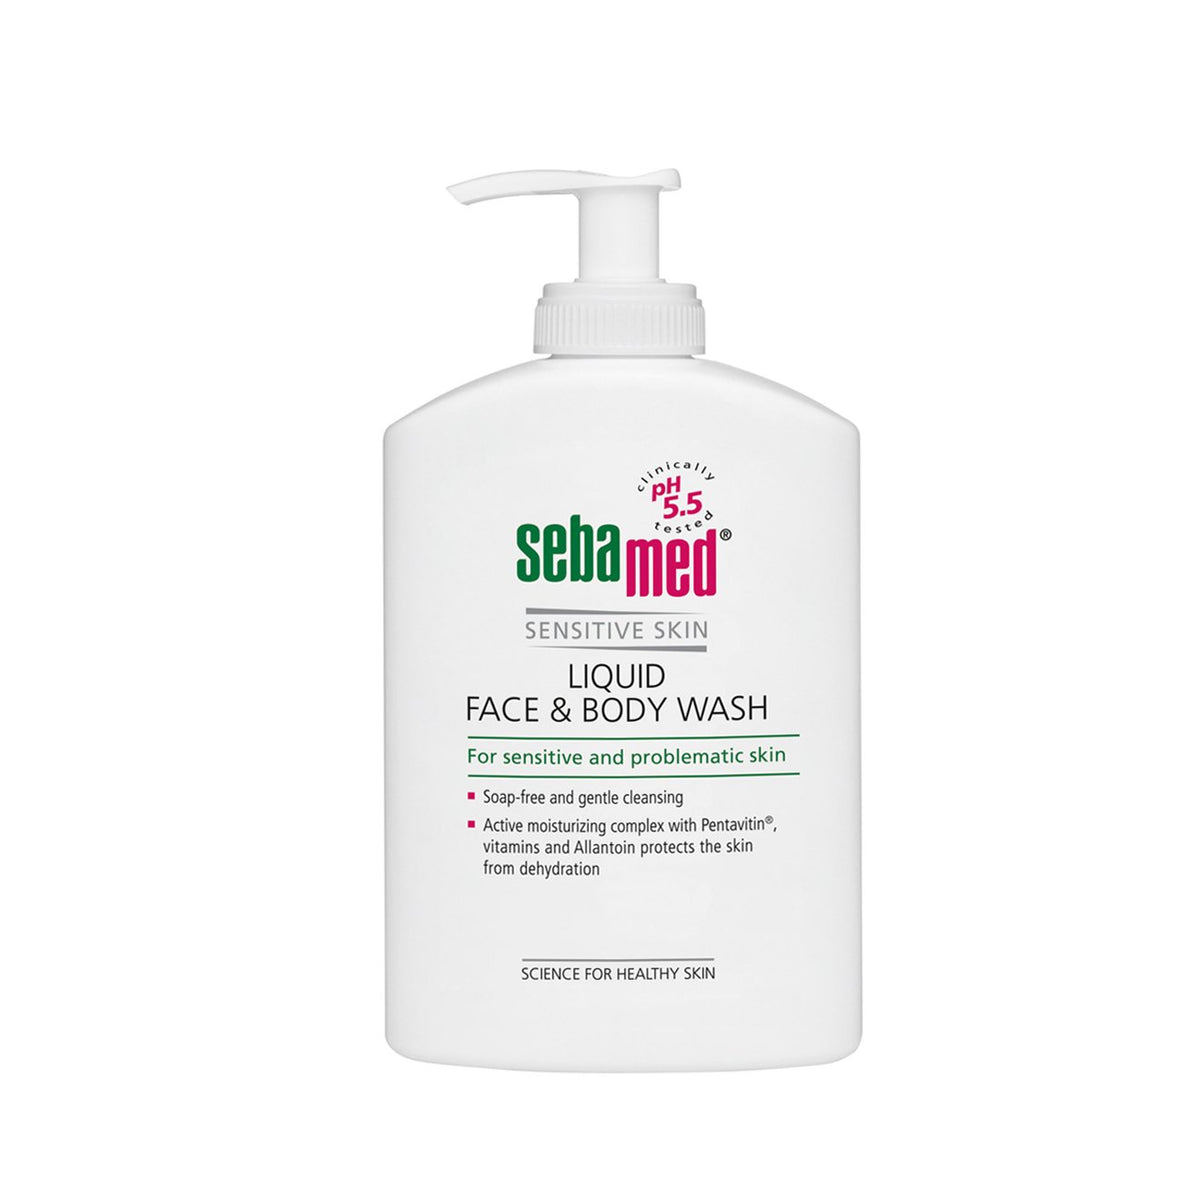 white 300ml sebamed liquid face and body wash pump bottle